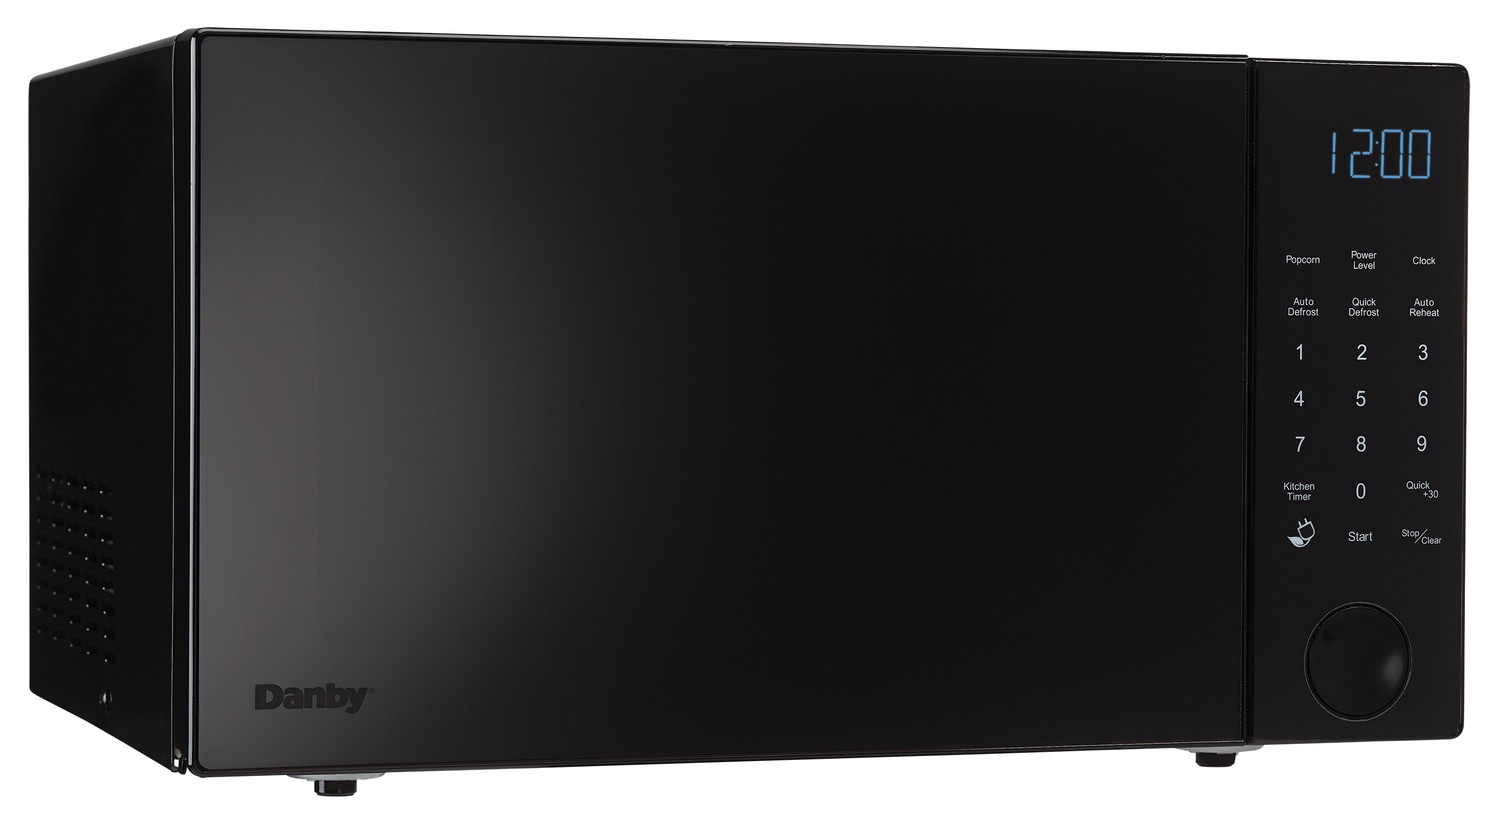 Cooking Products - Danby Black Countertop Microwave (1.1 Cu. Ft.) - DMW11A4BDB